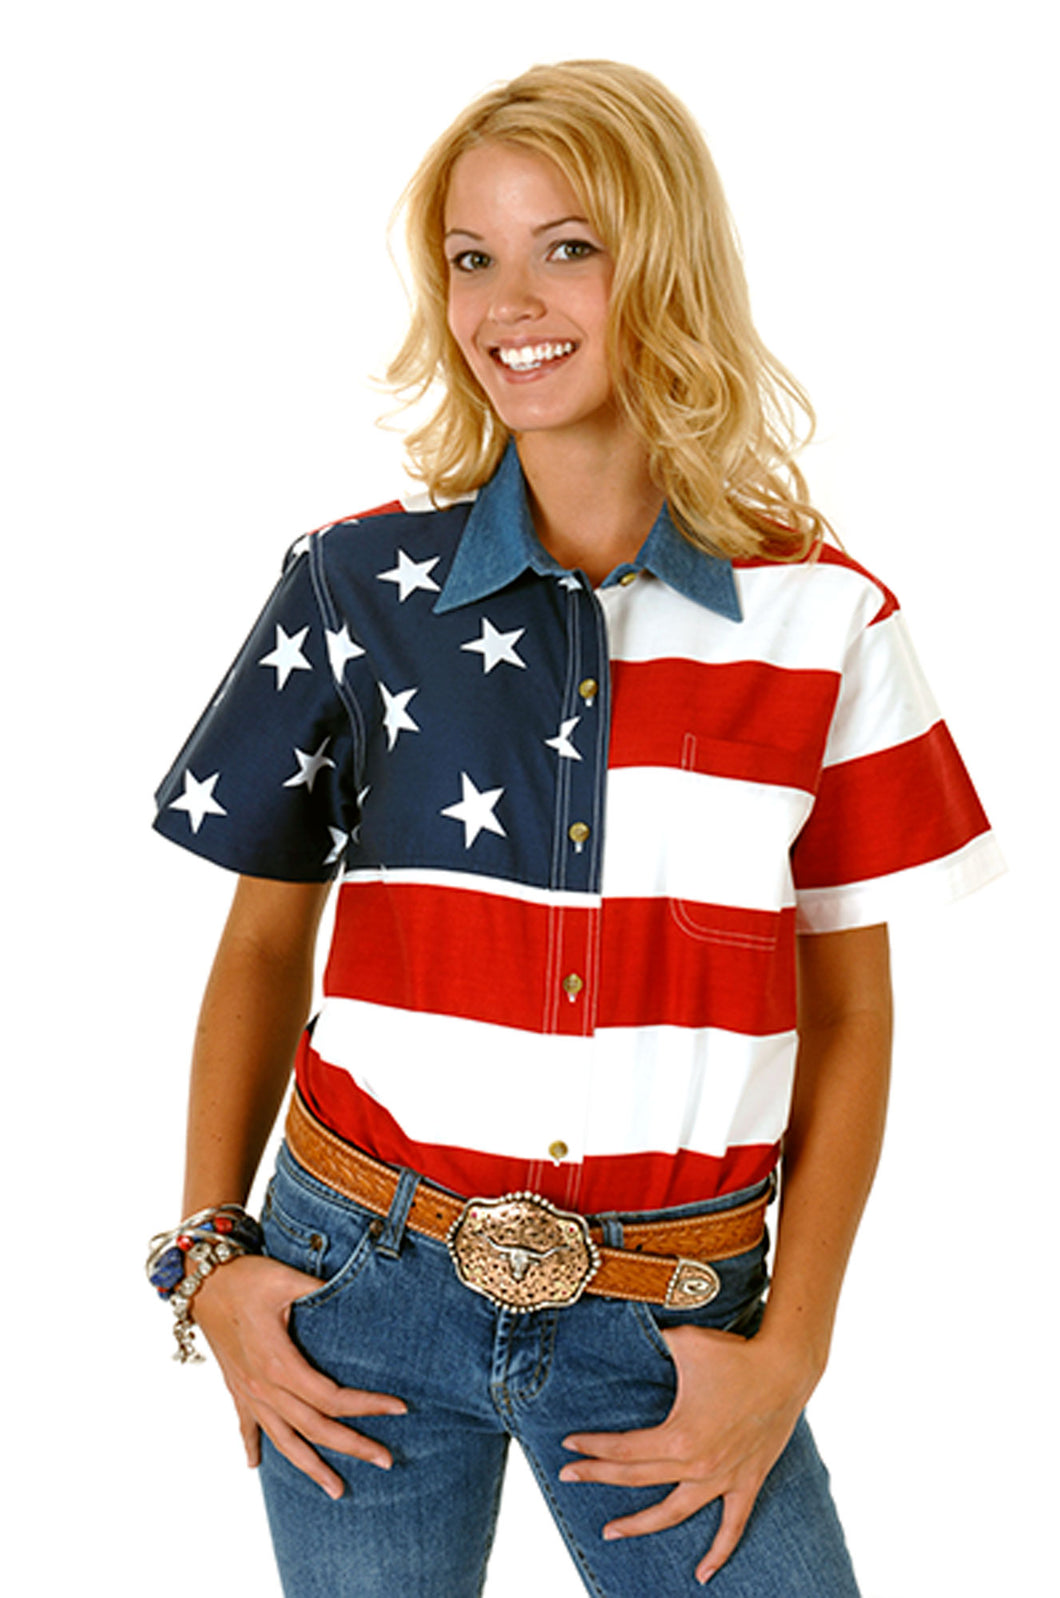 Stars and Stripes Pieced American Flag Patriotic Collection Women's Short Sleeve